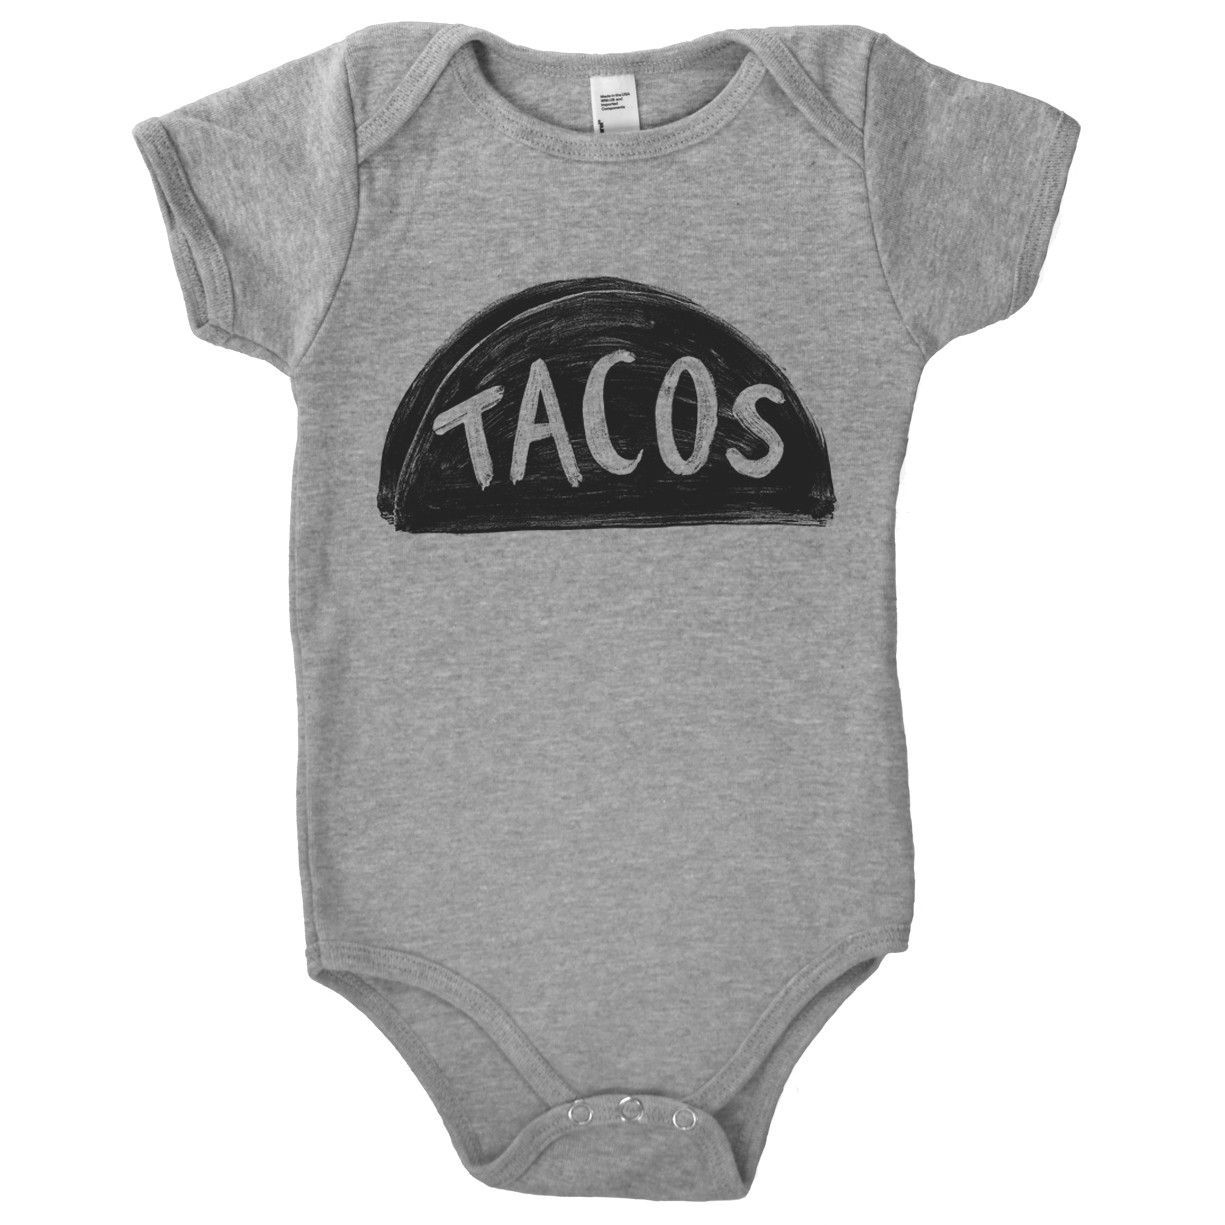 7139ccde6 Taco Baby Onesie This is my newest illustrated design, hand-printed onto  ultra soft t-shirts. The ink I use is a Japanese water-based brand that is  ...